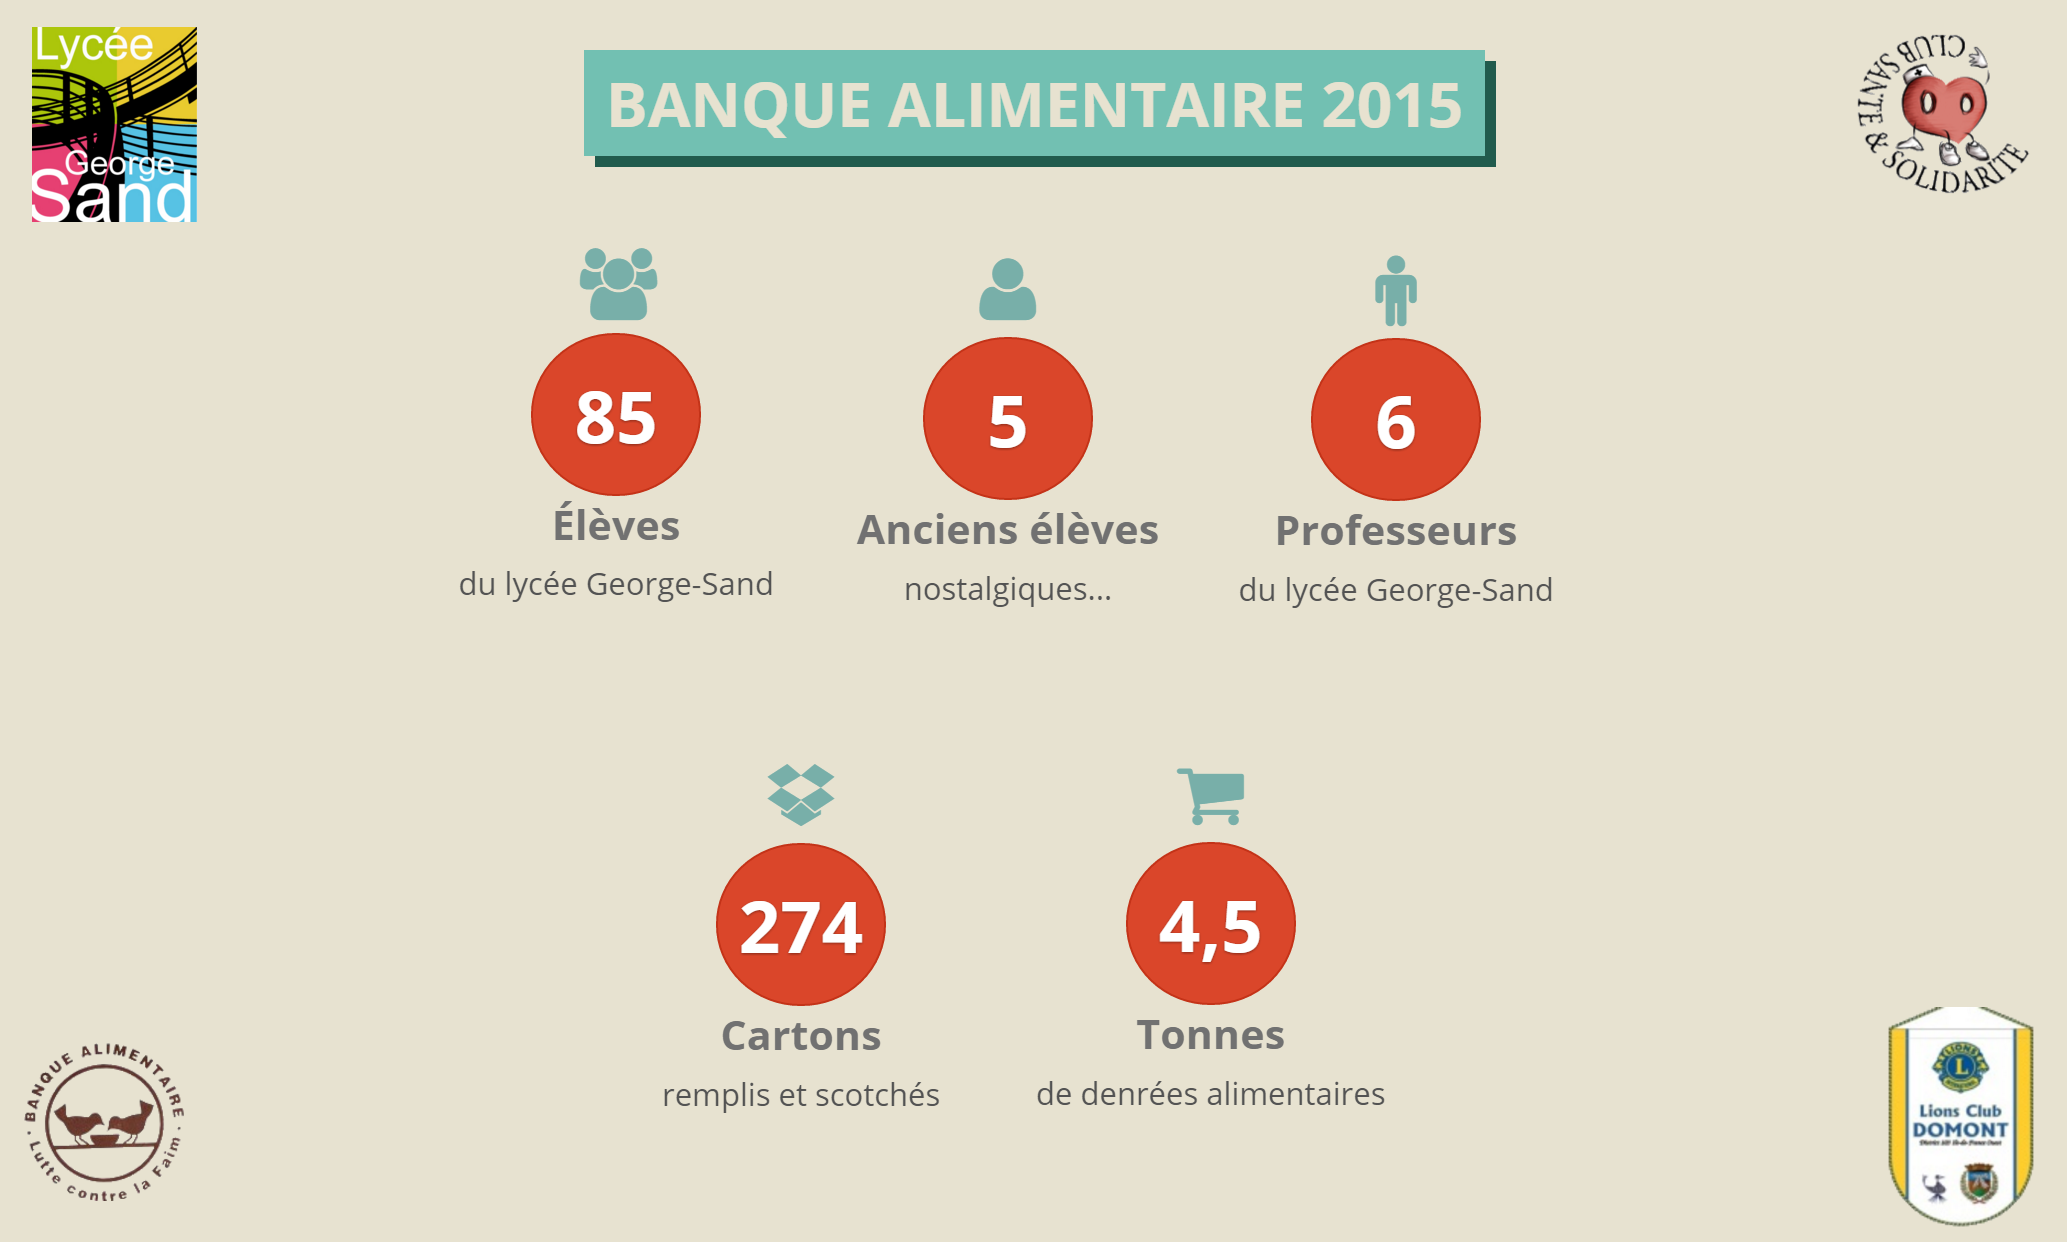 banque_alimentaire_2015